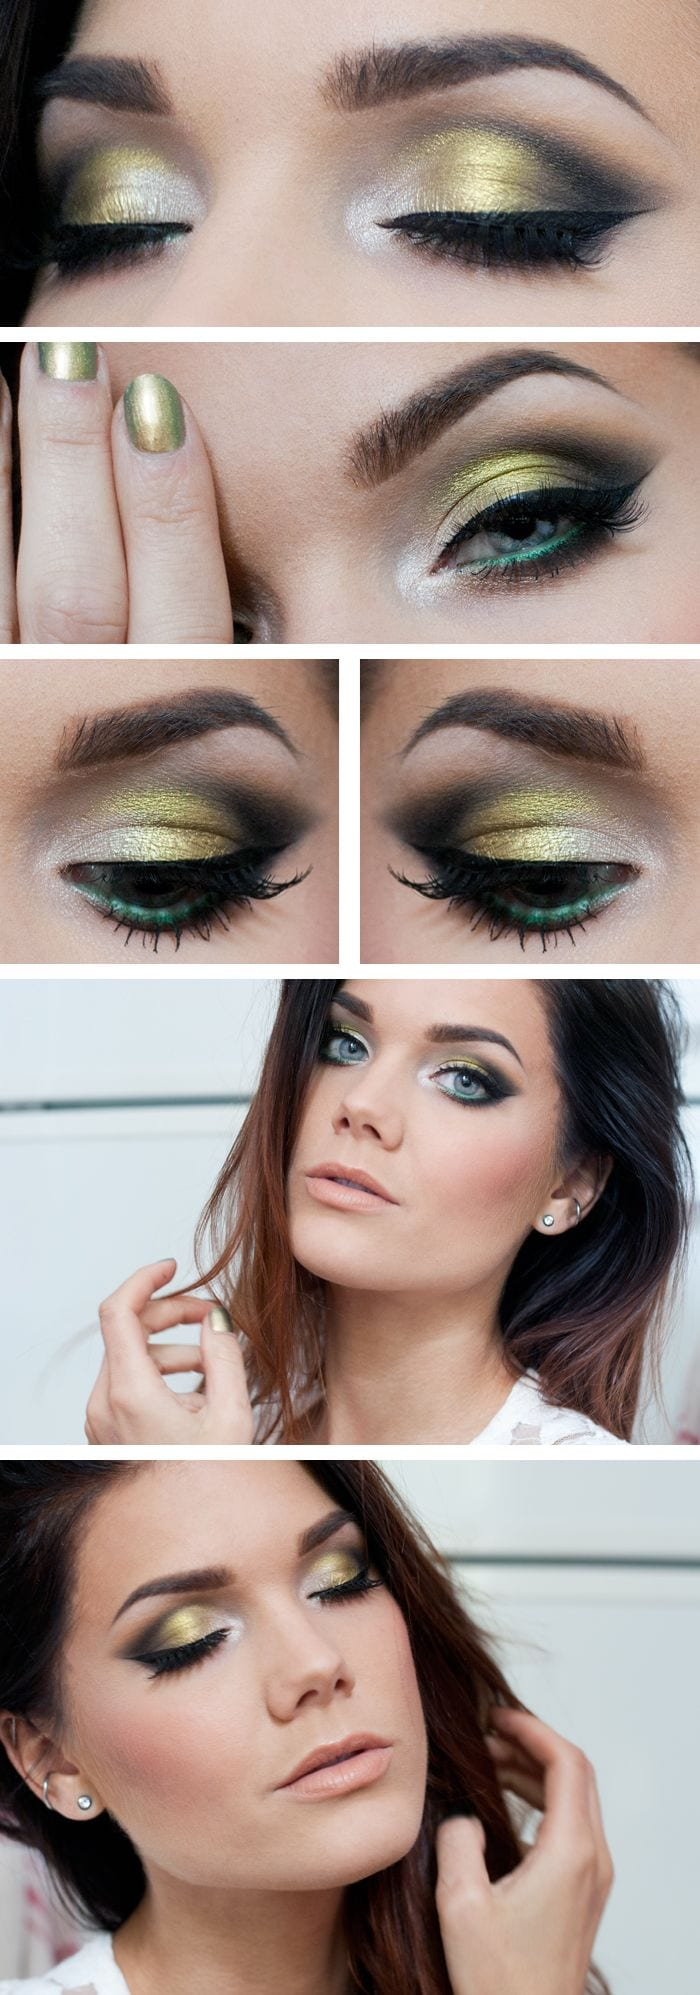 Eyeshadow Tutorial Videos: Top 10 Simple Smokey Eye Makeup Tutorials For Green Eyes